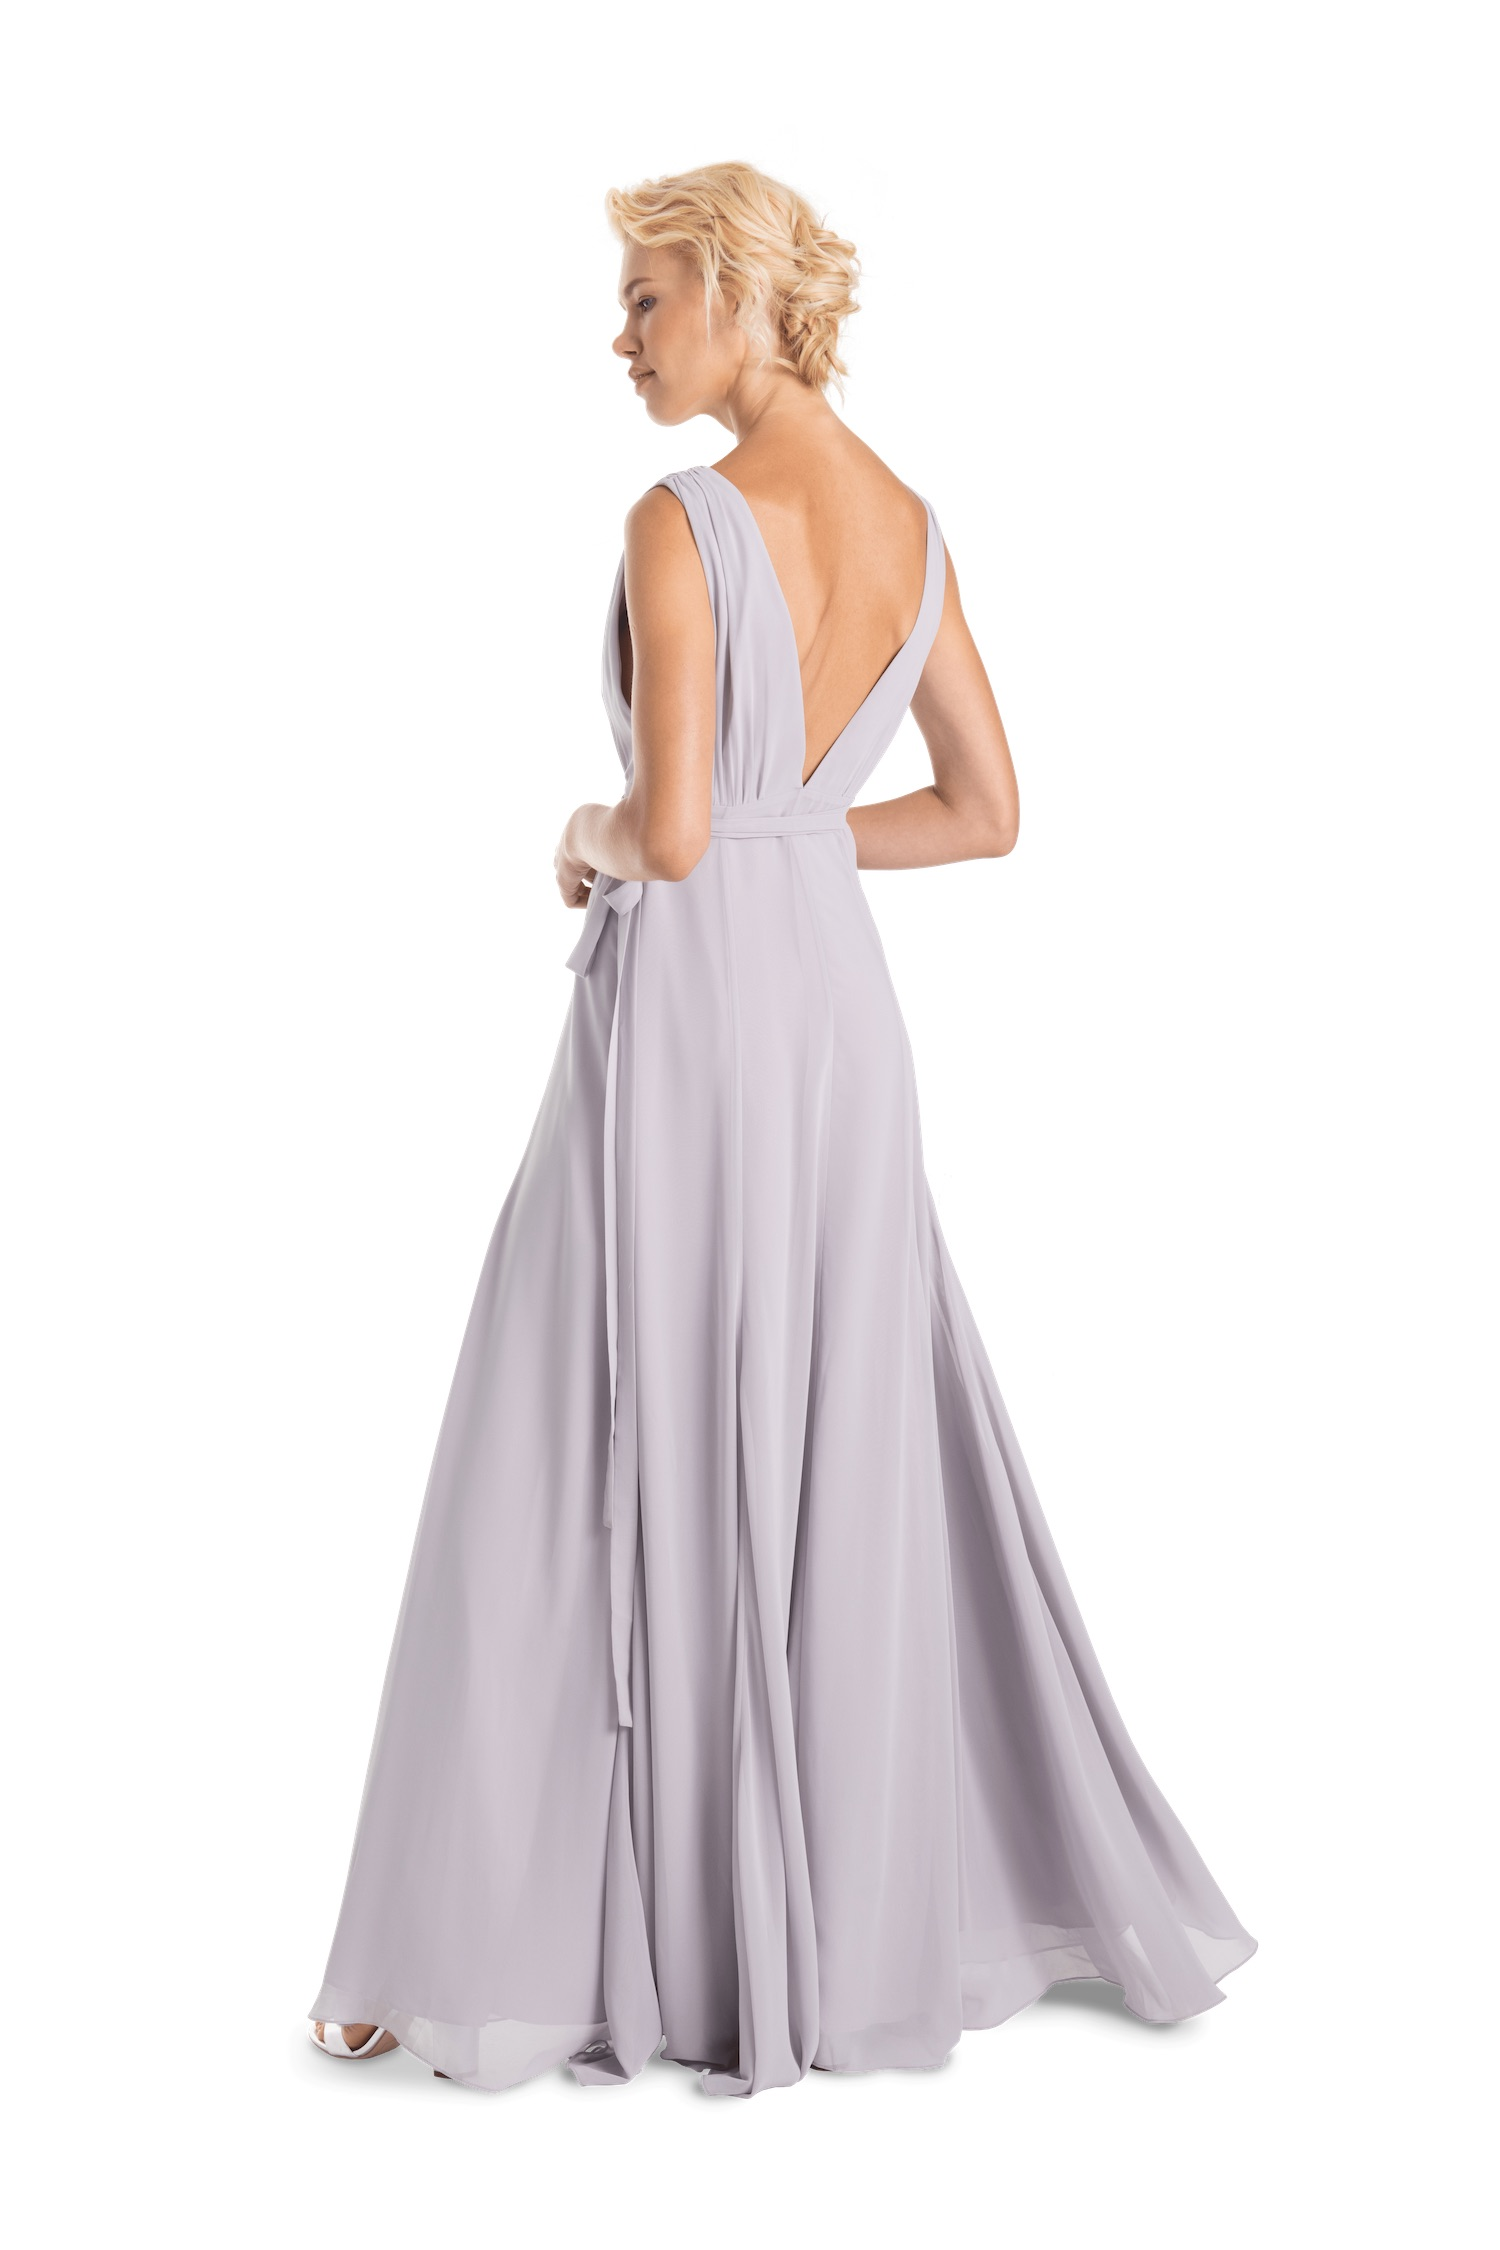 Romy Long by Joanna August deep v back in silver bells chiffon